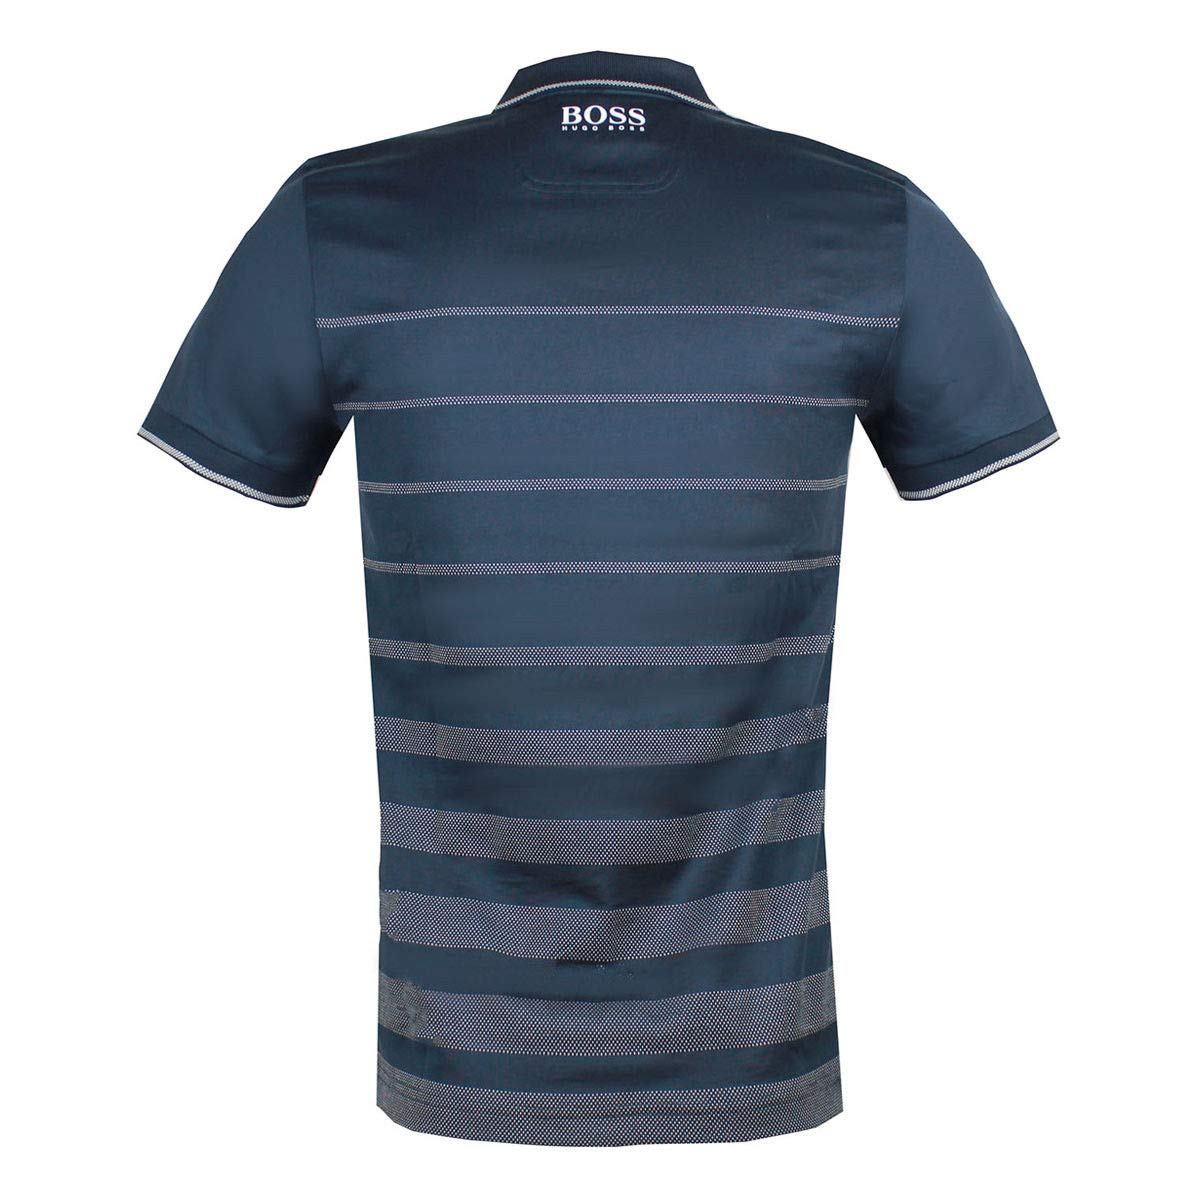 592a6e9c Amazon.com: Hugo Boss Mens Golf Polo Shirt 50389097 410 Paule Pro 2 Navy:  Clothing